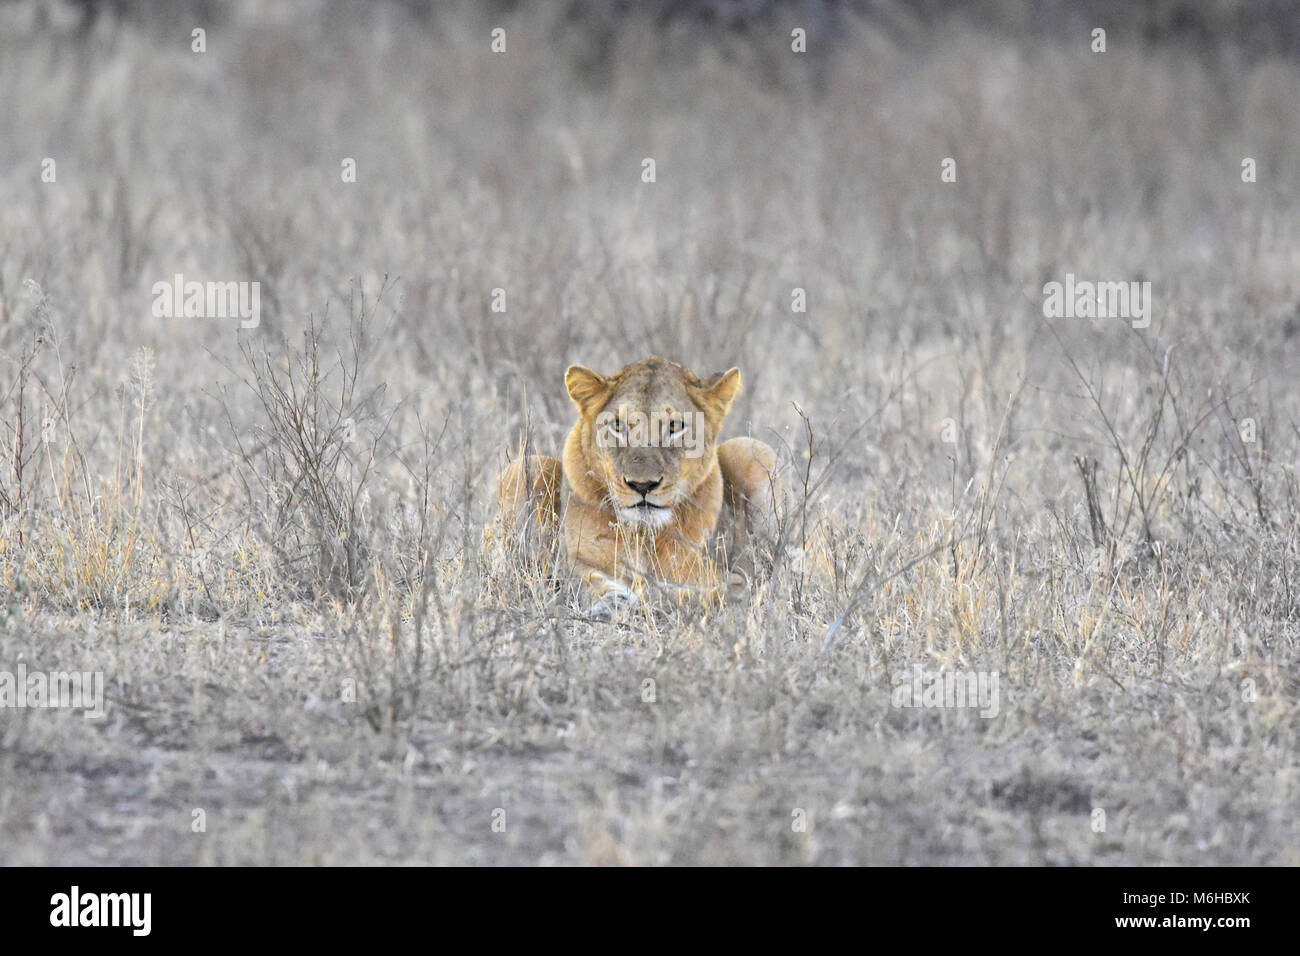 Kruger park, South Africa. Panthera leo lioness in dead grass staring at camera. - Stock Image